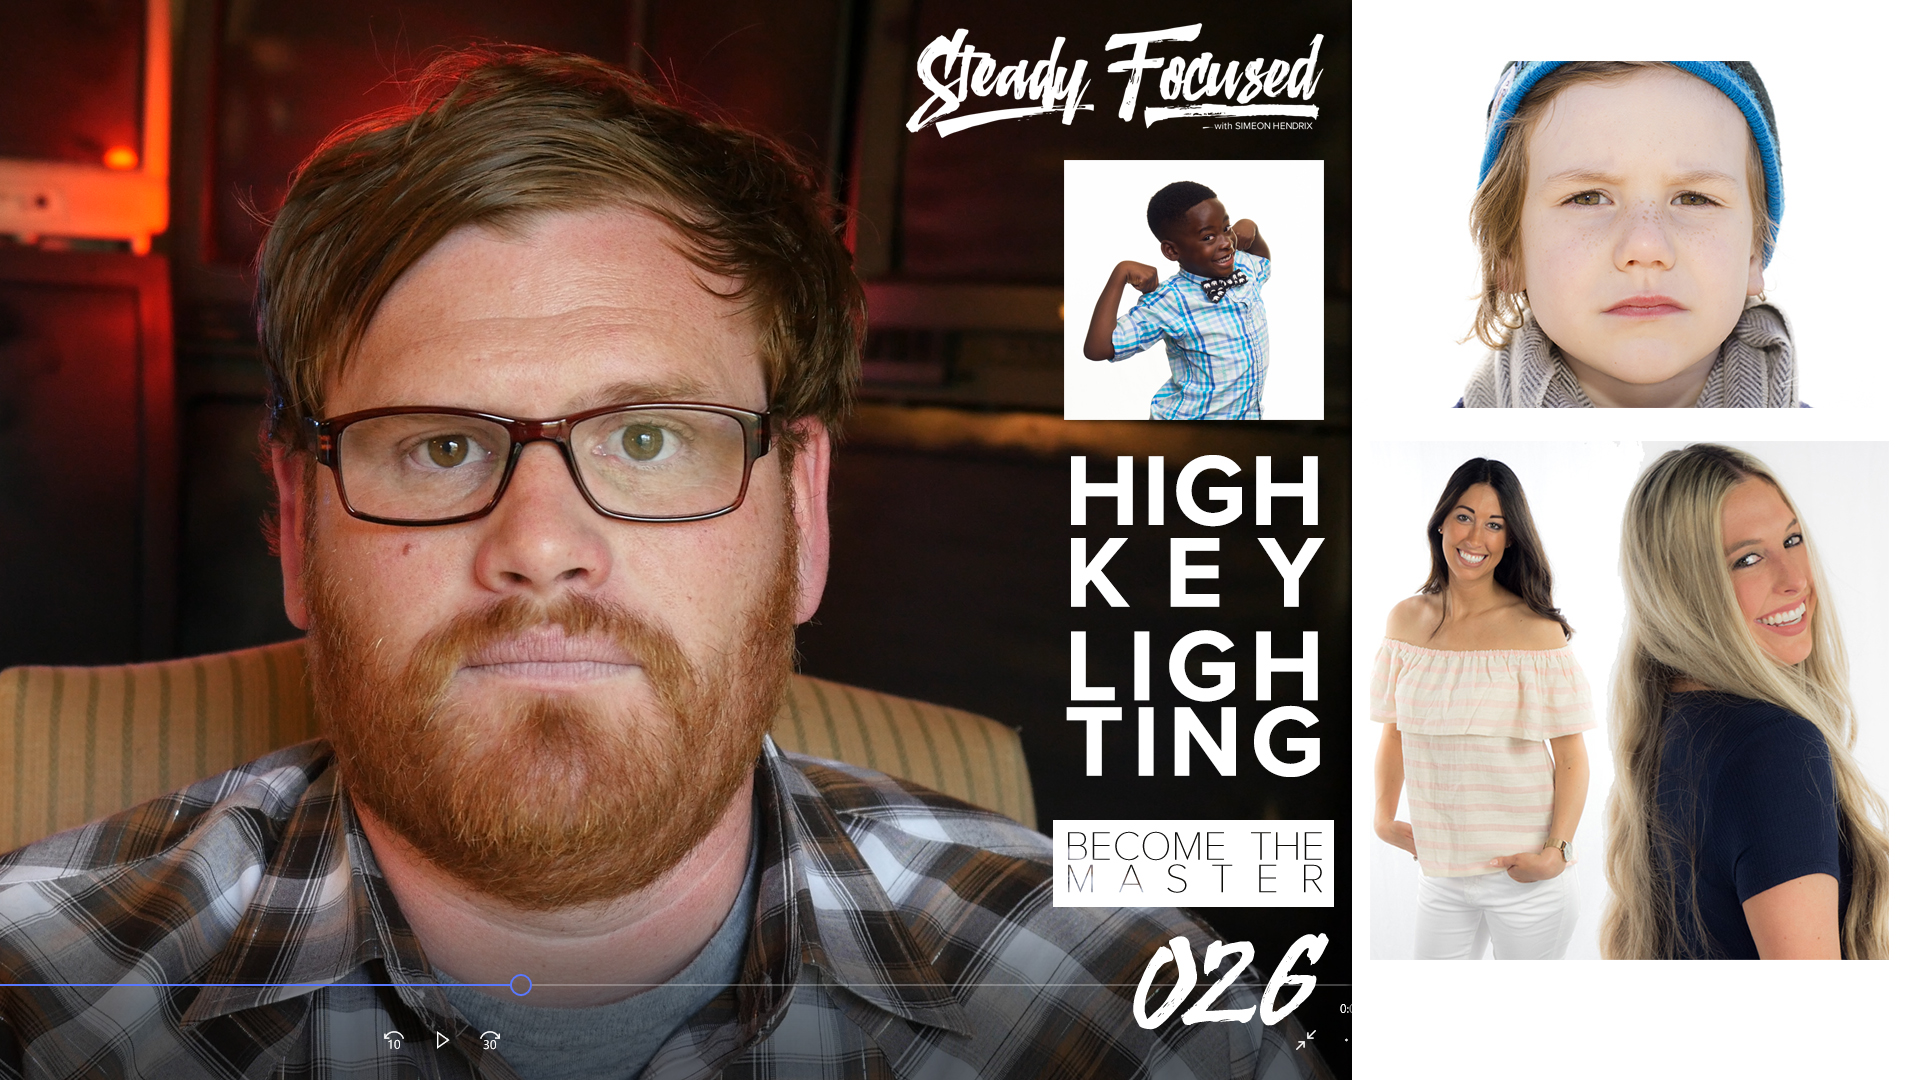 How to easily achieve perfect white background - High Key Lighting. Steady Focused EP 026.